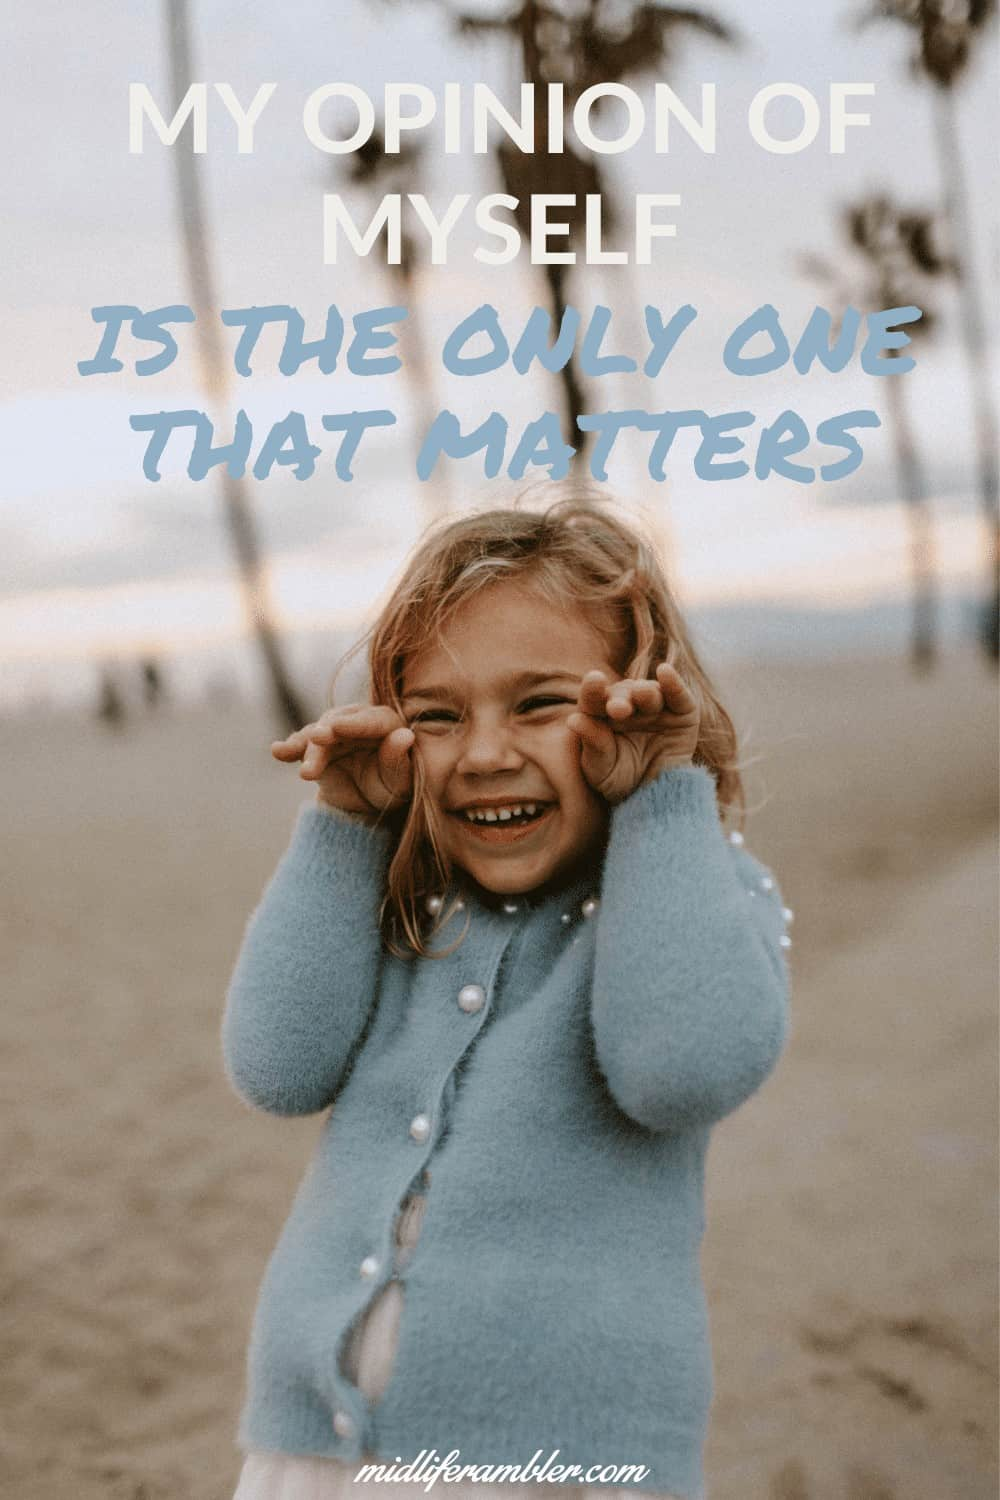 Affirmations for Self-Compassion - My opinion of myself is the only one that matters.